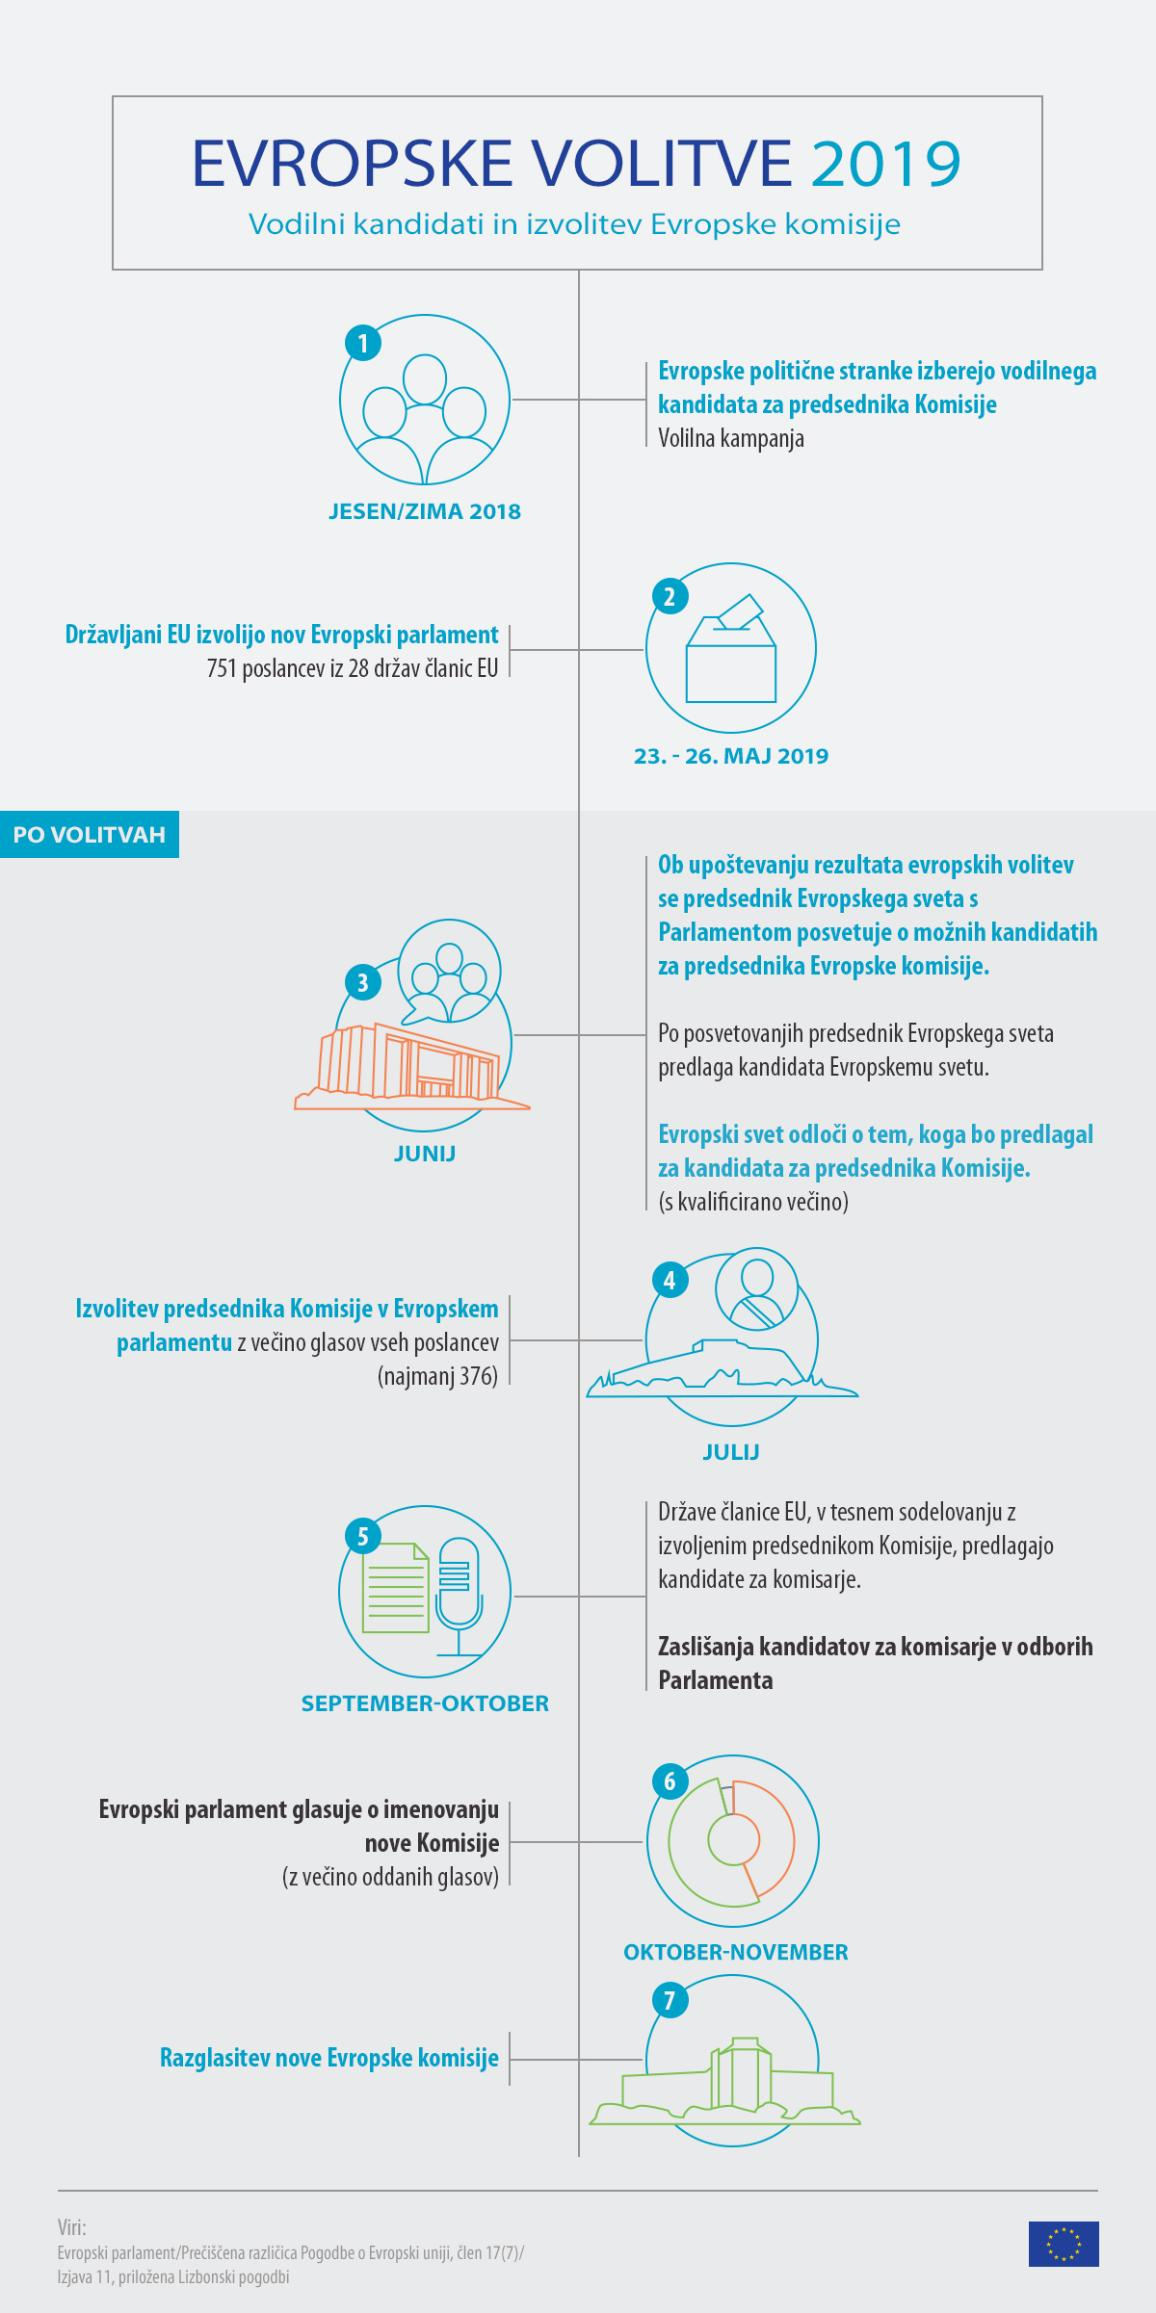 Infographic on European election 2019 - timeline